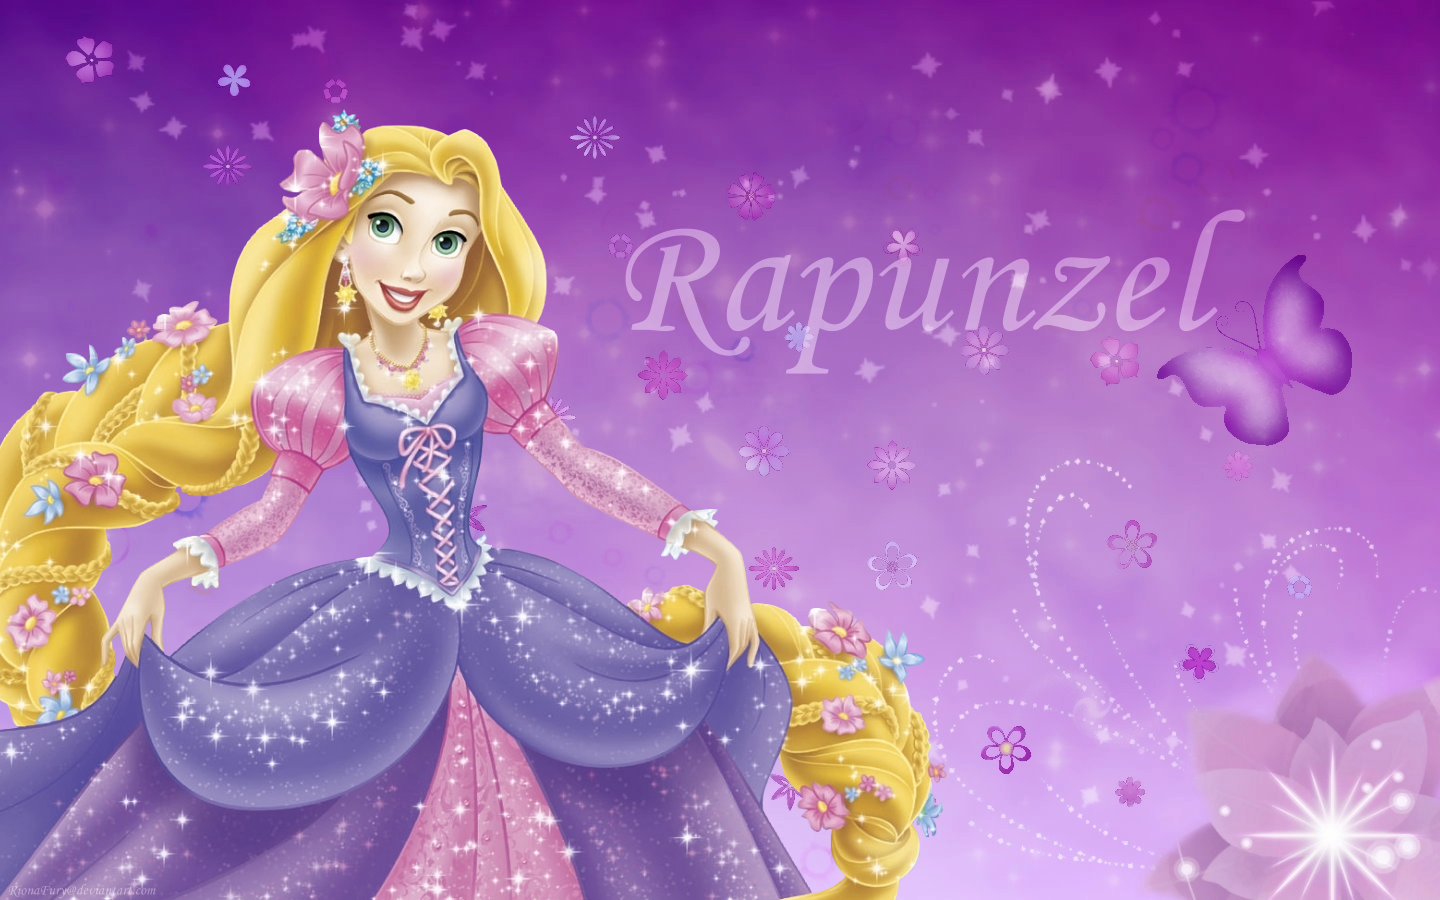 Tangled images Disney Princess Rapunzel wallpaper photos 23744594 1440x900